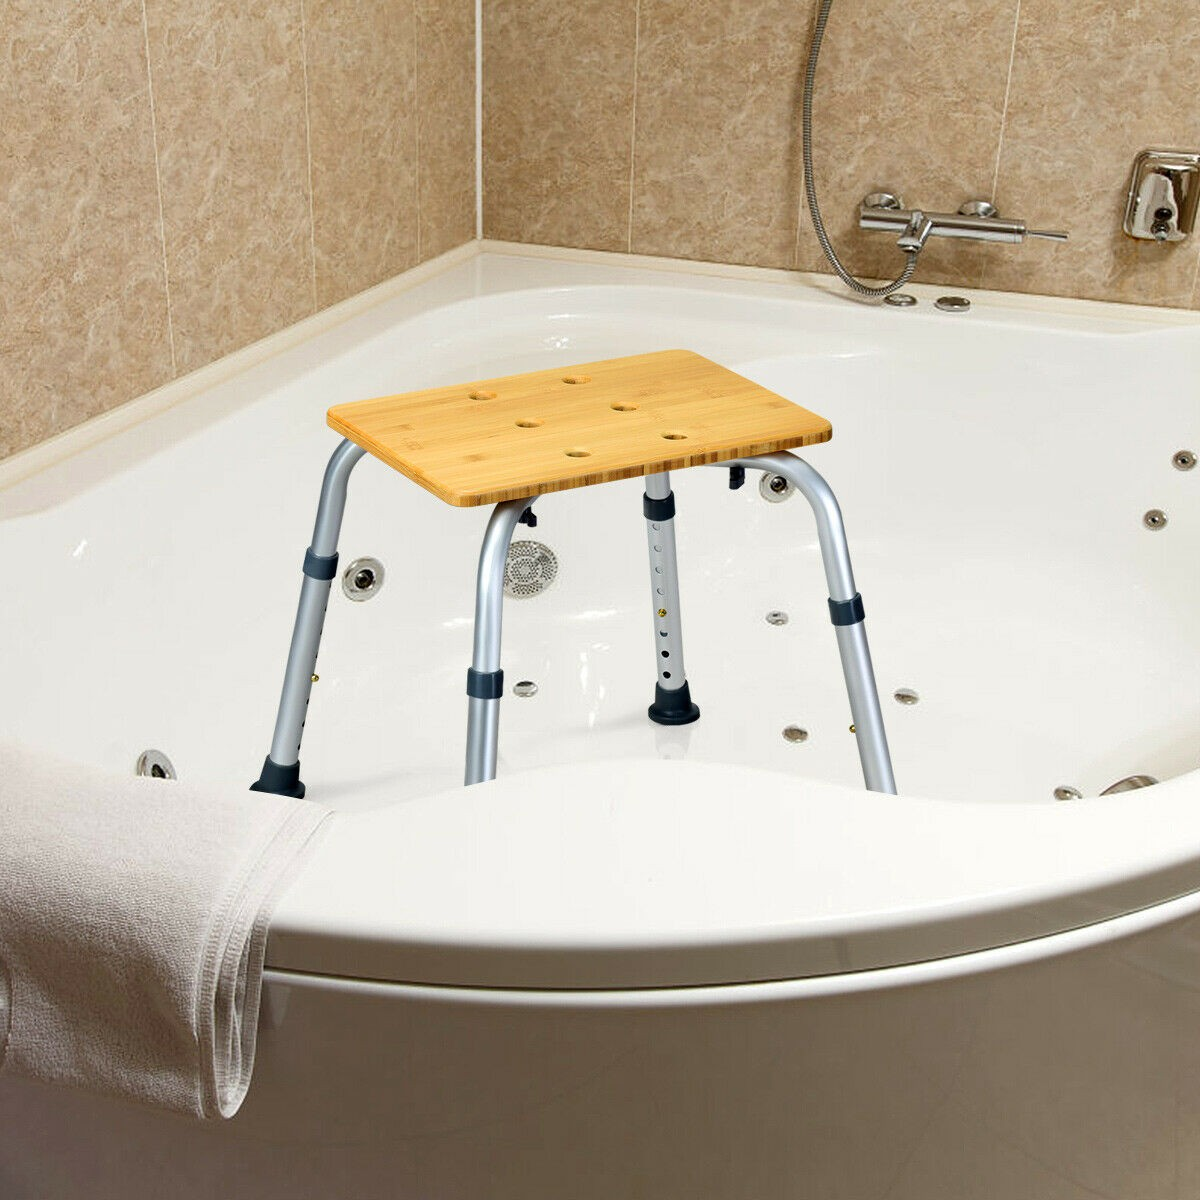 Bathtub - Square Shaped Multifunctional Bamboo Bath Seat Shower Chair Adjustable Non Slip Rubber Feet Rust-proof Aluminum Frame Chair